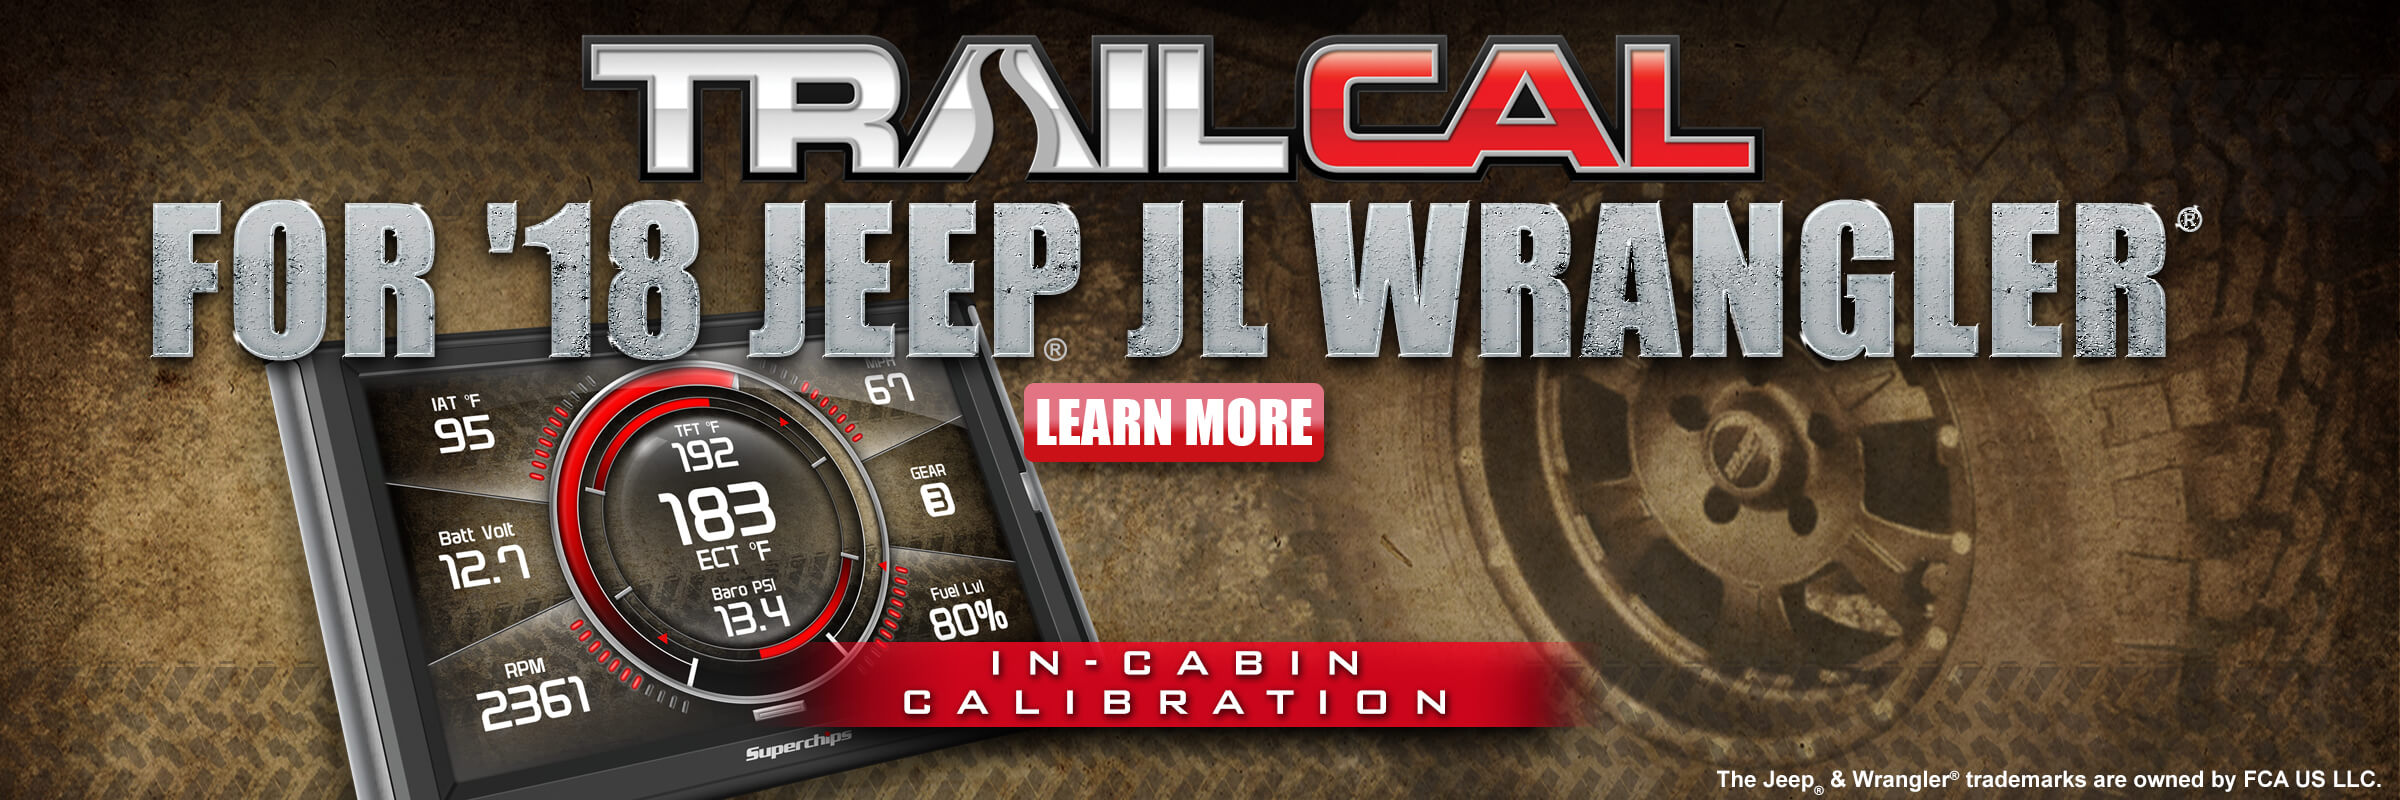 TrailCal for JL Wrangler